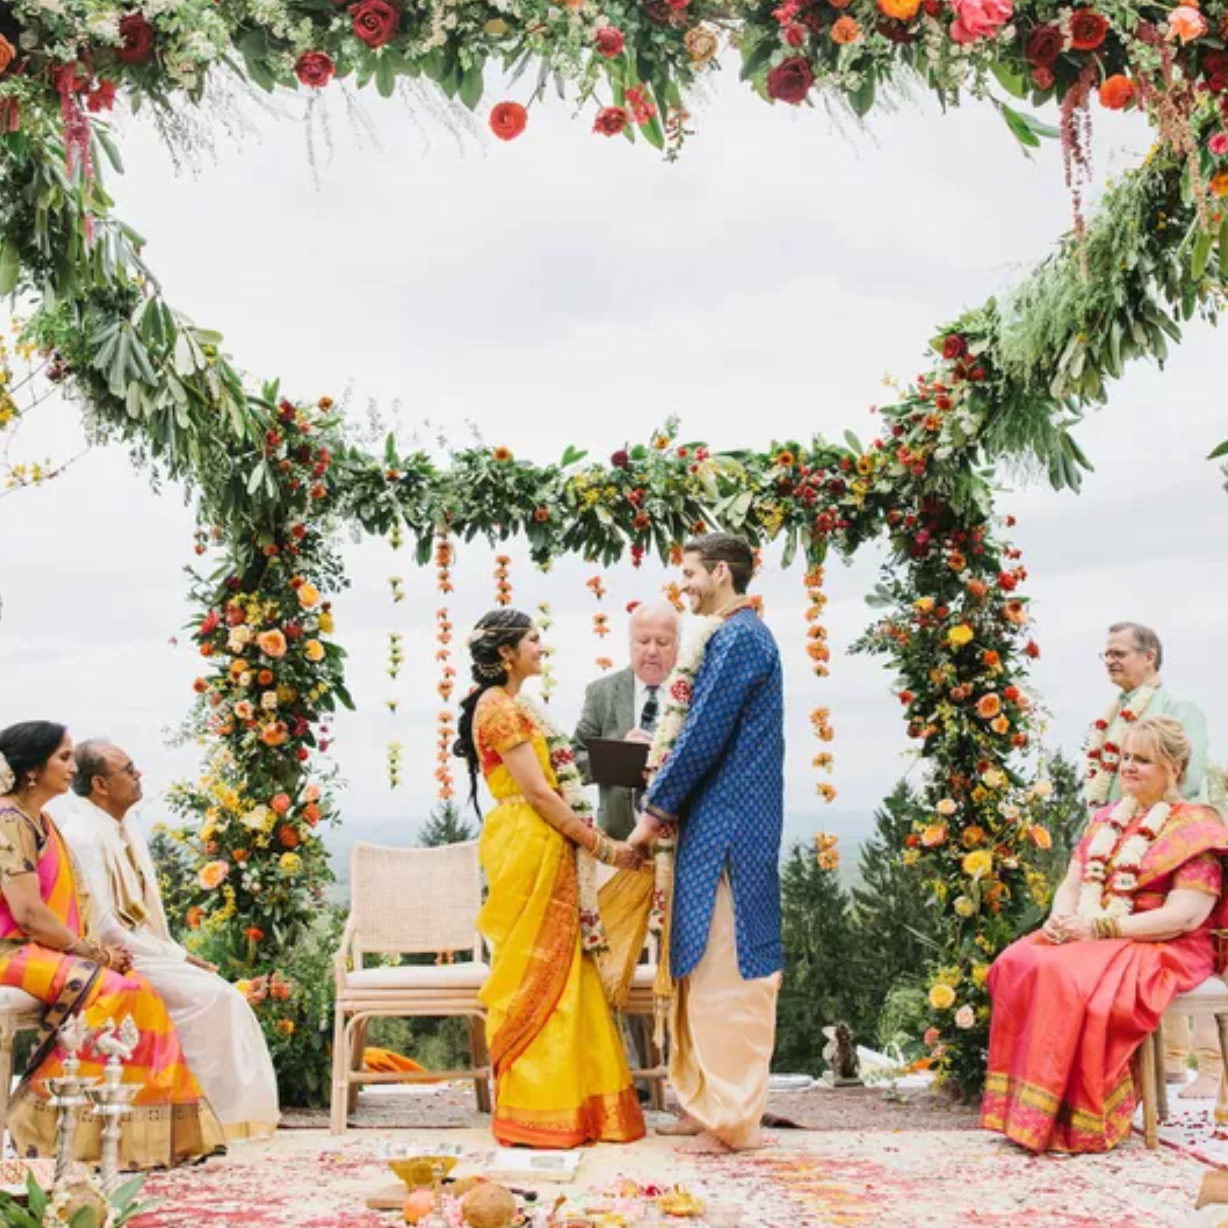 25 Wedding Ceremony Ideas To Personalize Your Big Day